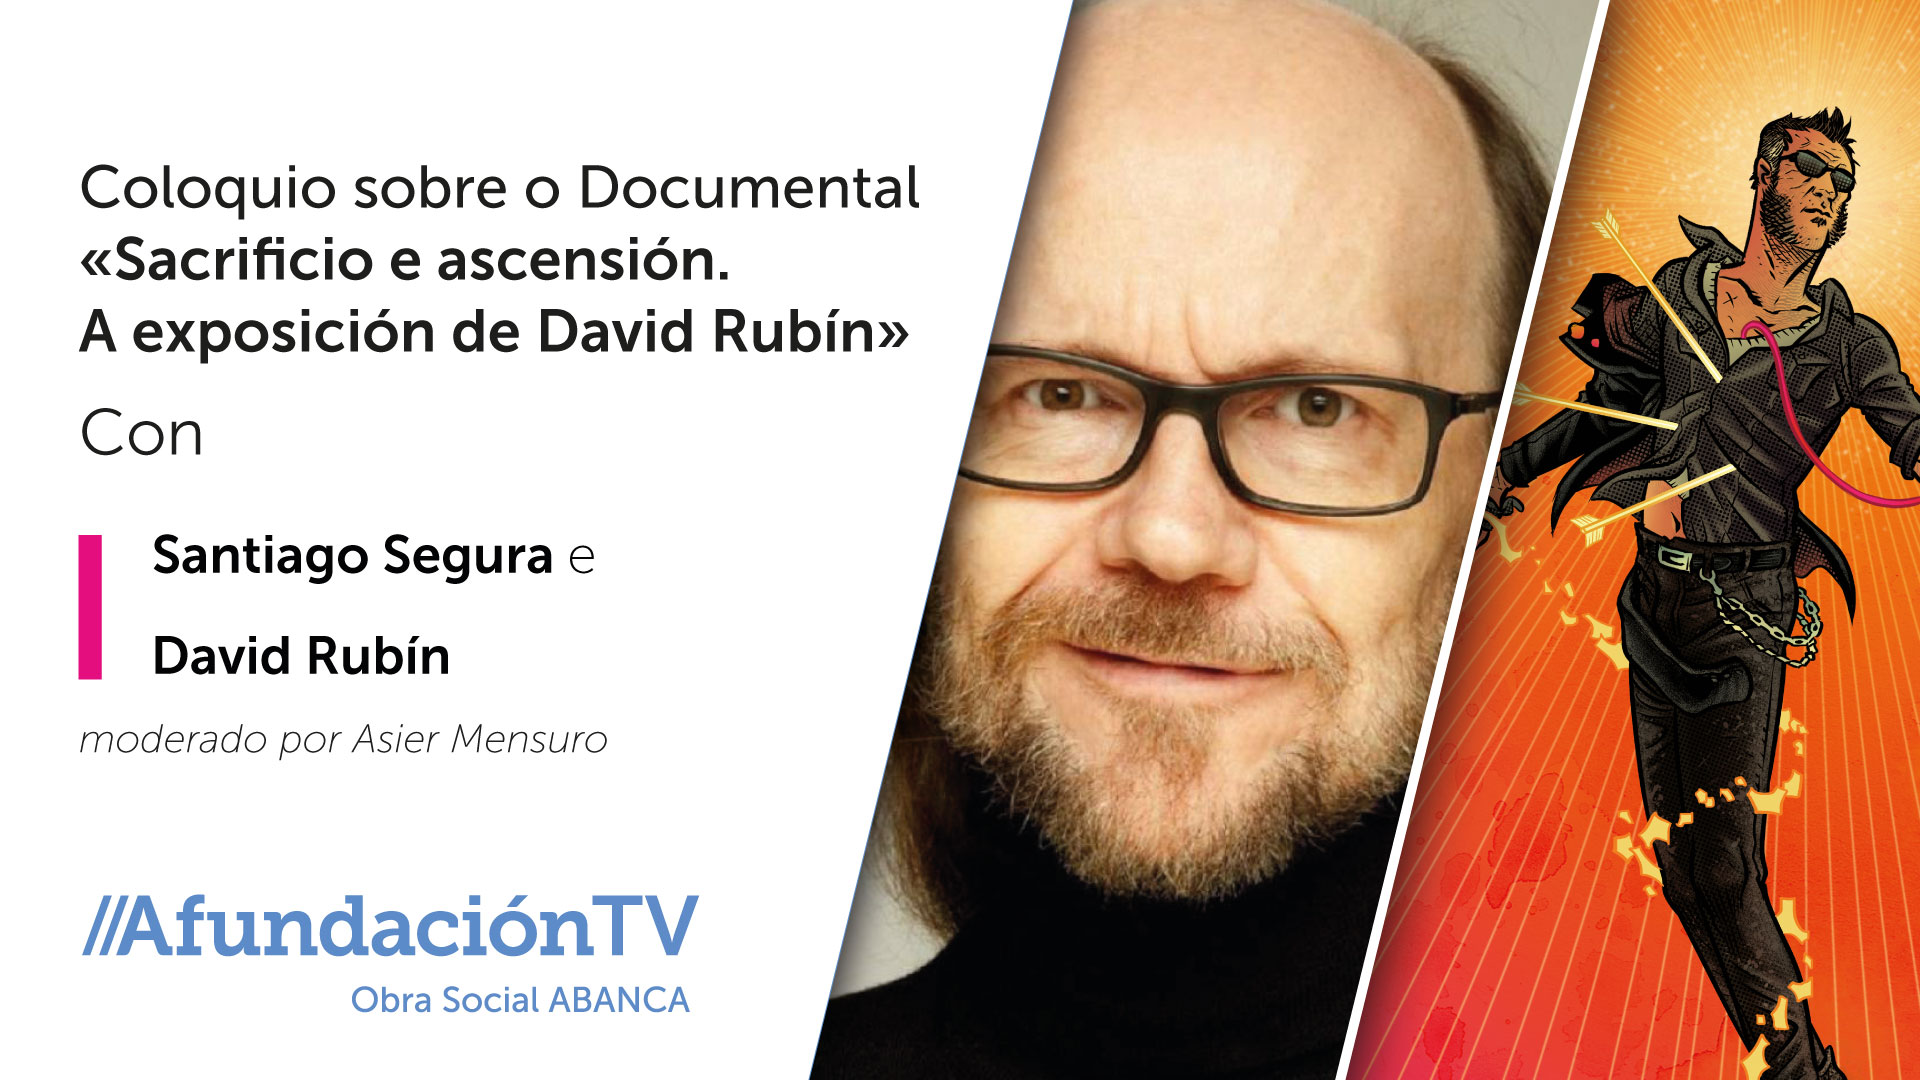 Afundación TV conta con Santiago Segura no coloquio sobre o documental en torno a David Rubín